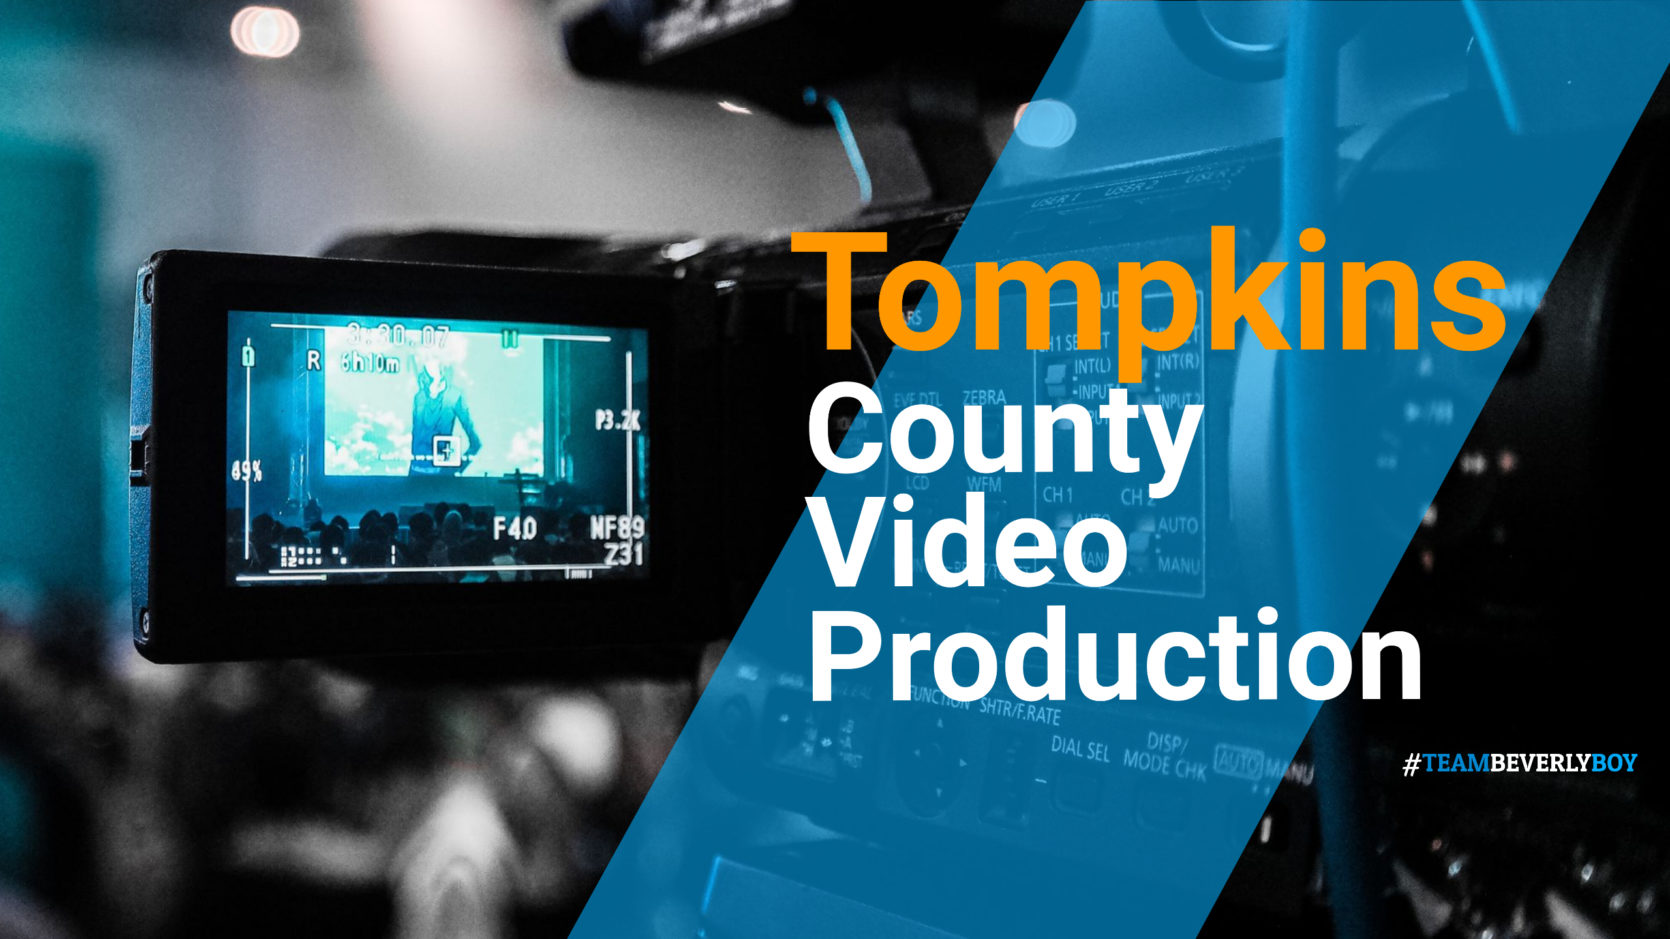 Tompkins county Video Production